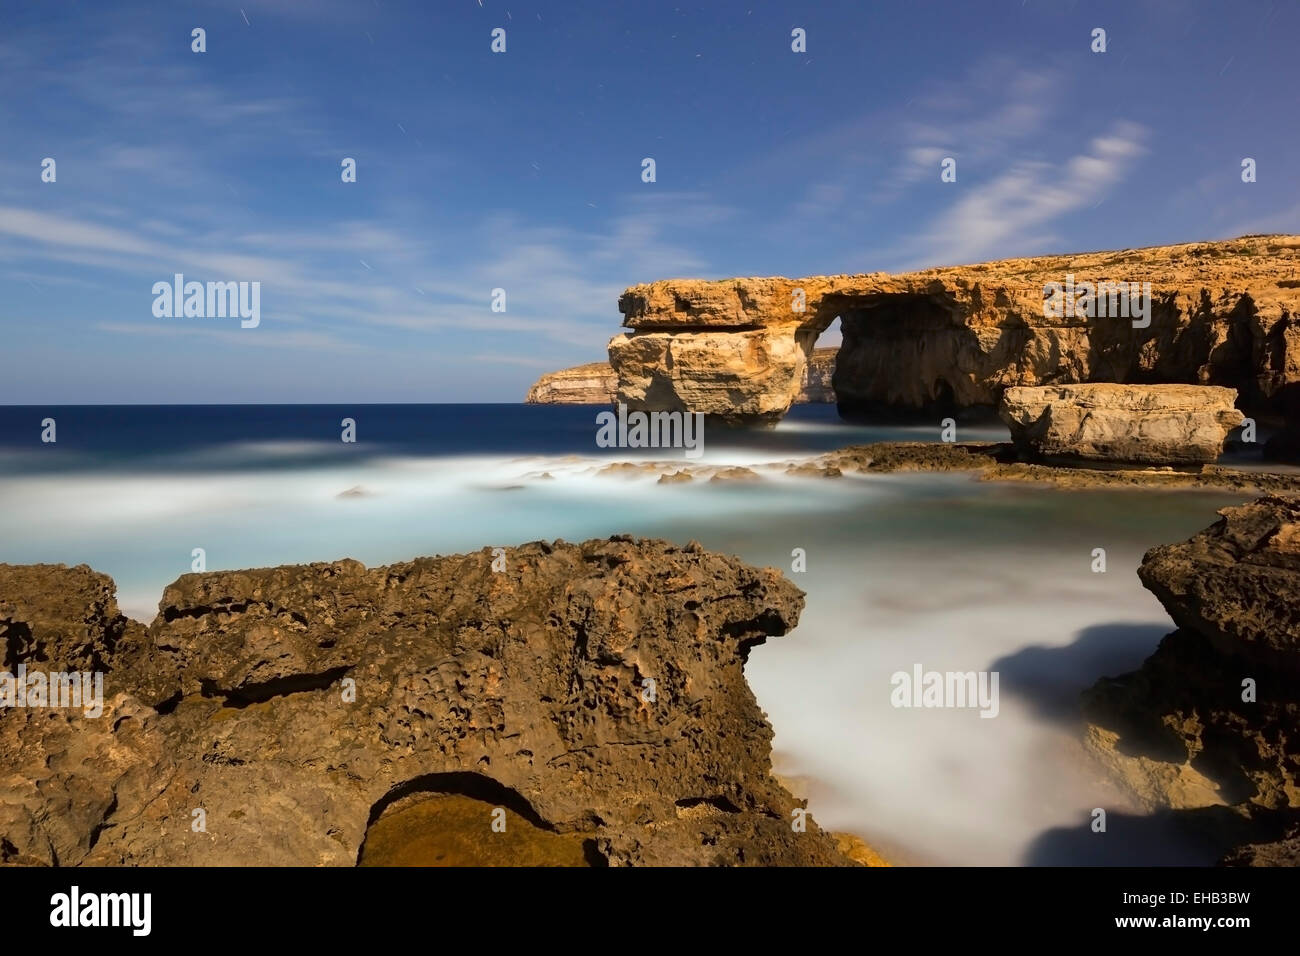 Mittelmeer Europa, Malta, Insel Gozo, Dwerja Bay, The Azure Window naturale Stockbild